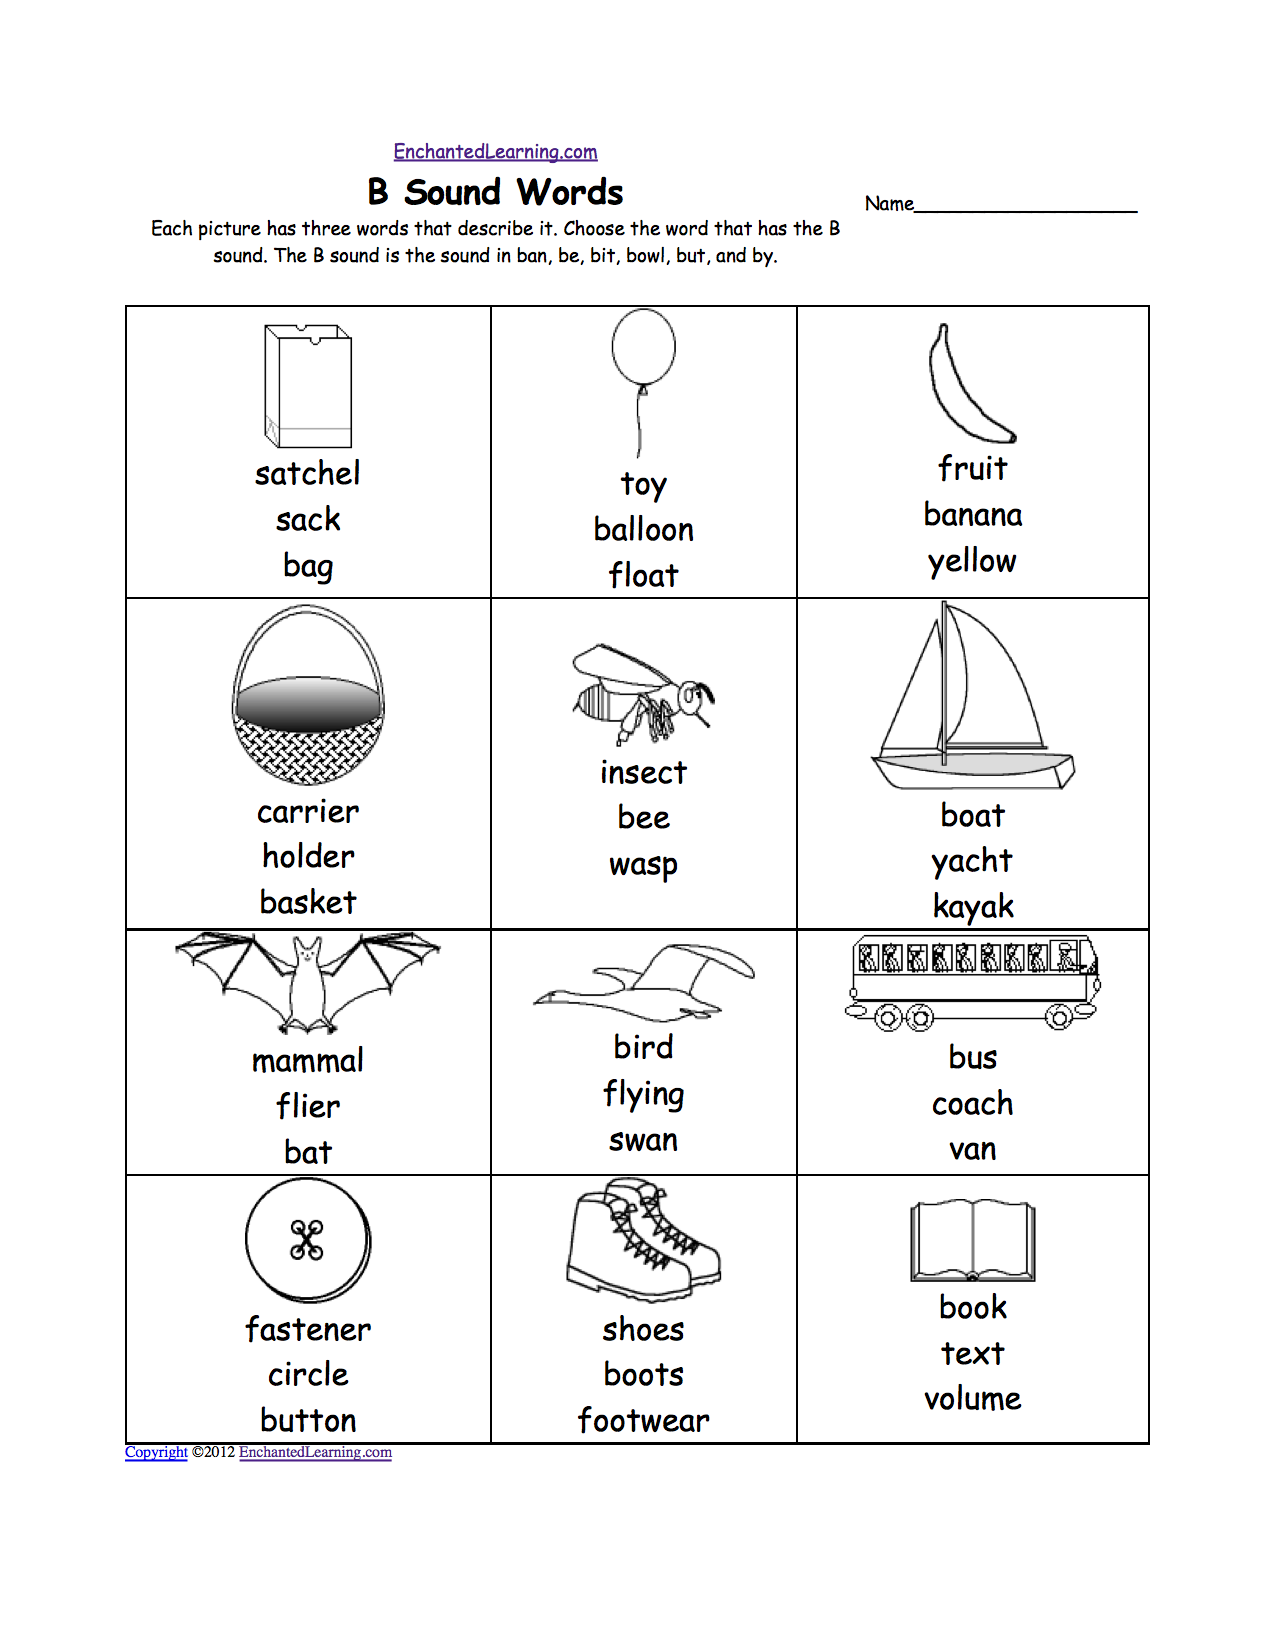 Weirdmailus  Mesmerizing Phonics Worksheets Multiple Choice Worksheets To Print  With Entrancing Quotbquot Sound Phonics Worksheet Multiple Choice Each Picture Has Three Words That Describe It Choose The Word That Has A Quotbquot Sound The Quotbquot Sound Is The Sound  With Appealing Spanish Time Worksheet Also Wants And Needs Worksheets For Kids In Addition Farm Worksheets And Atmosphere Worksheet As Well As Teacher Created Resources Inc Worksheets Answers Additionally Sixth Grade Spelling Worksheets From Enchantedlearningcom With Weirdmailus  Entrancing Phonics Worksheets Multiple Choice Worksheets To Print  With Appealing Quotbquot Sound Phonics Worksheet Multiple Choice Each Picture Has Three Words That Describe It Choose The Word That Has A Quotbquot Sound The Quotbquot Sound Is The Sound  And Mesmerizing Spanish Time Worksheet Also Wants And Needs Worksheets For Kids In Addition Farm Worksheets From Enchantedlearningcom